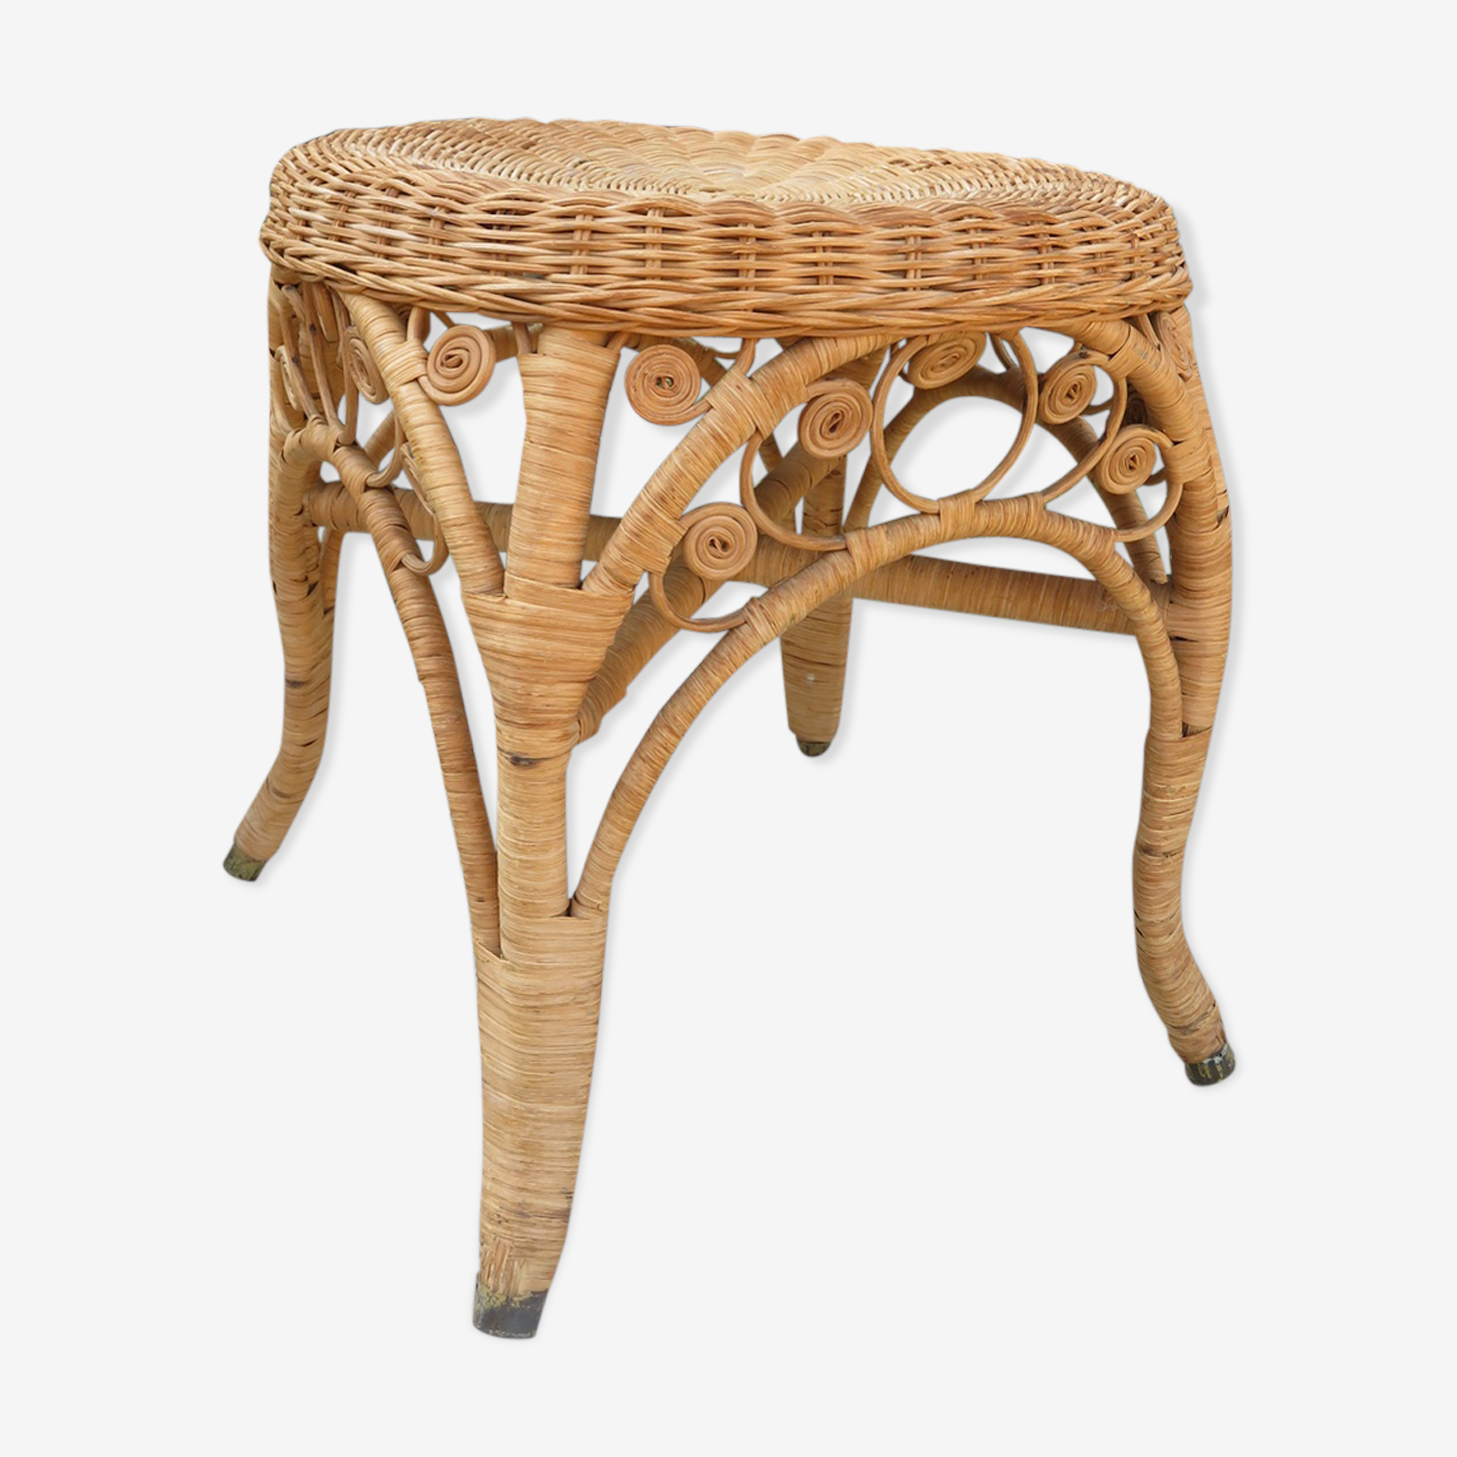 Stool peacock rattan of the 1970s